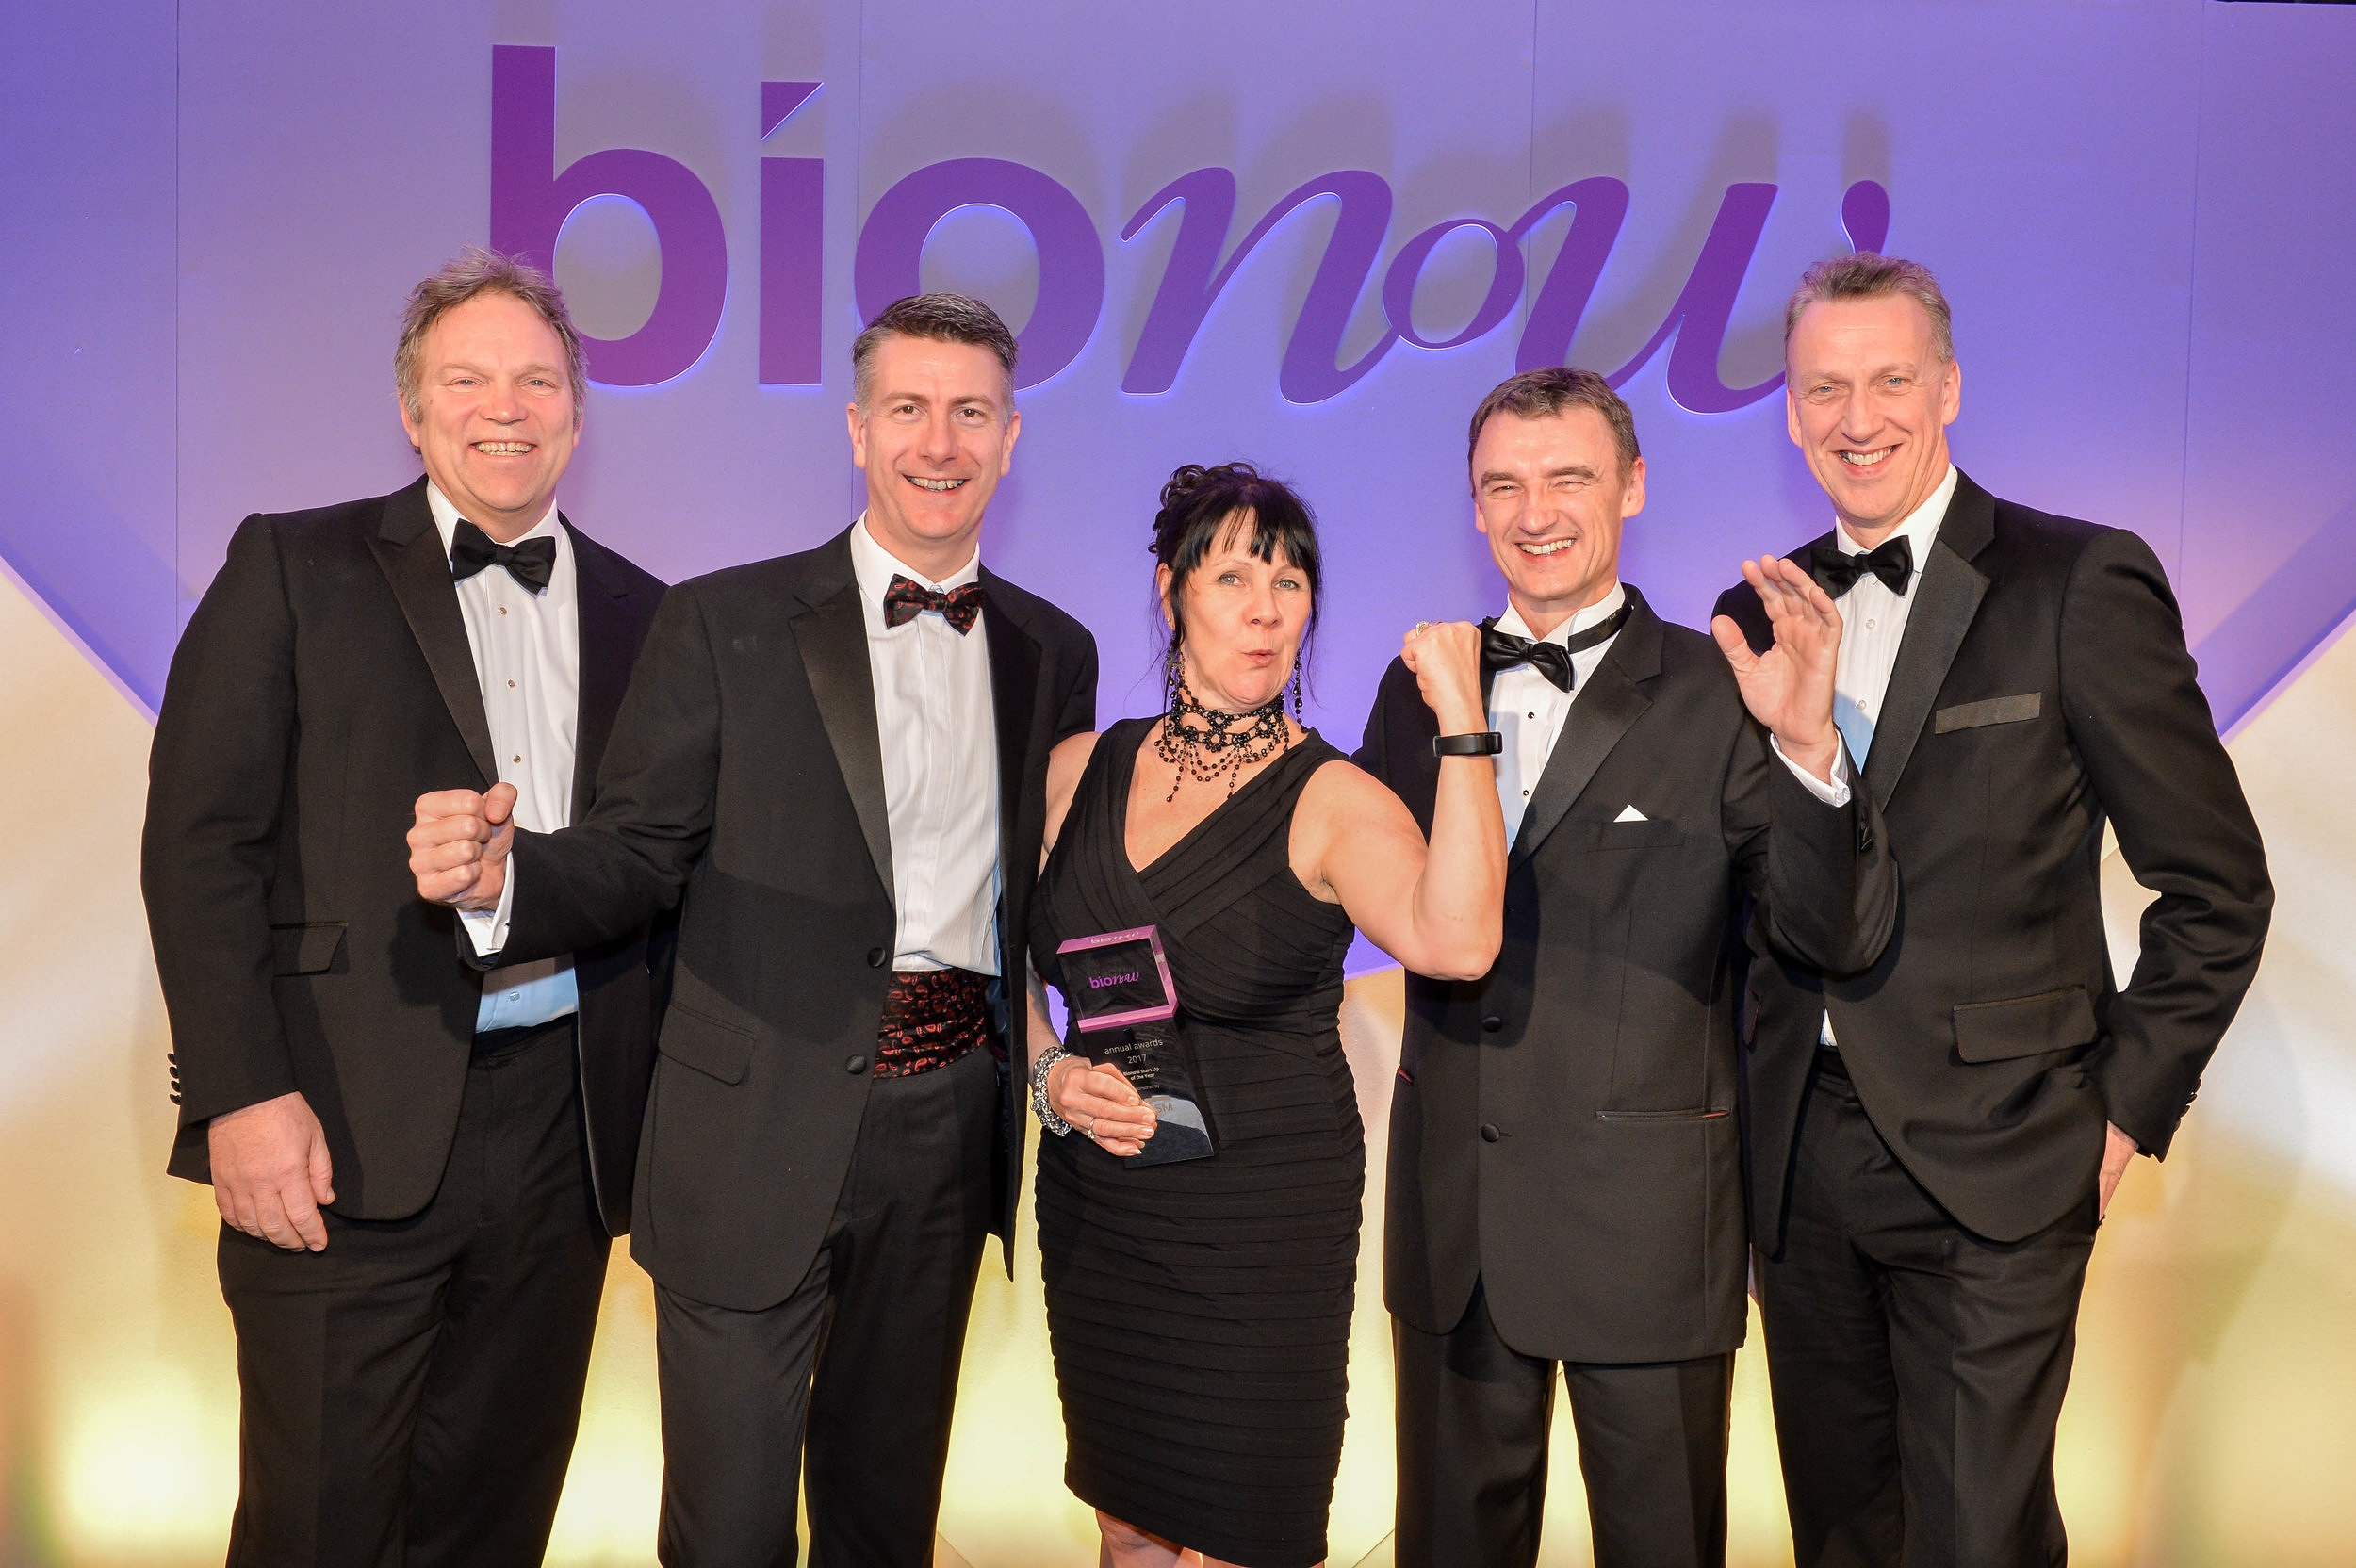 Dr Chris Doherty, Managing Director, Alderley Park with Ned Wakeman, Director, BioHub and ApconiX - winners of Start-Up of the Year Award